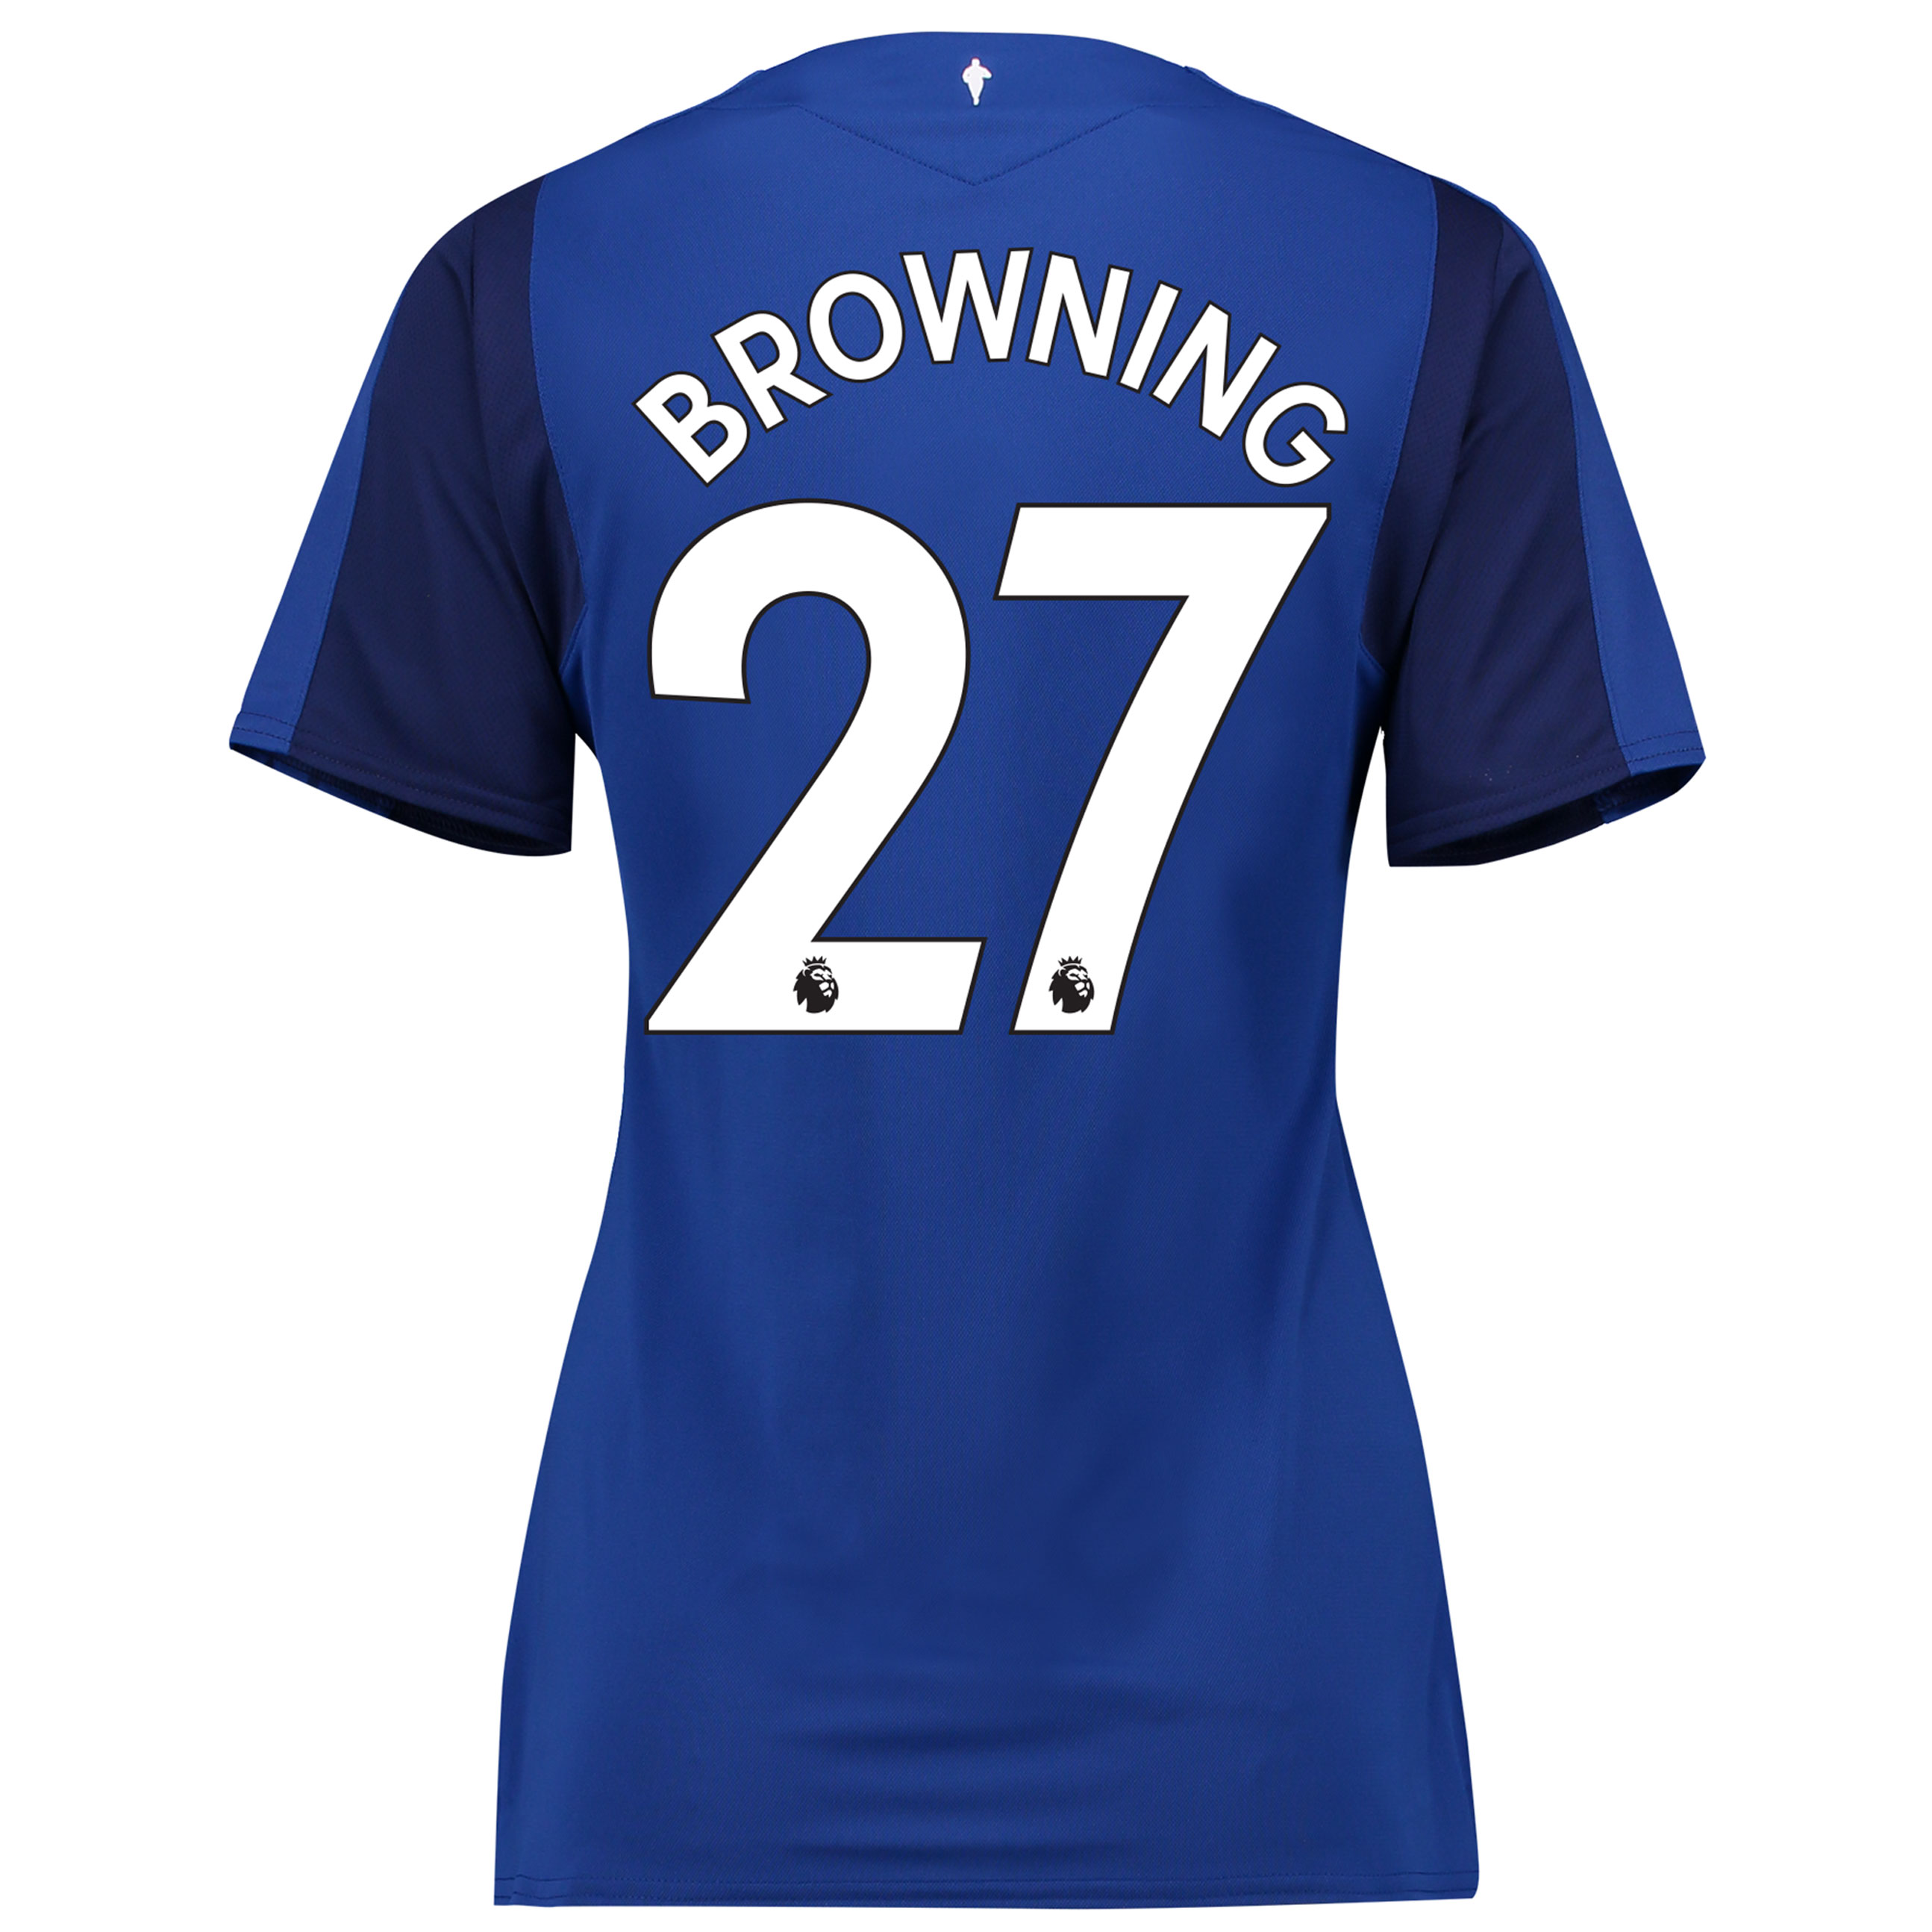 Everton Home Shirt 2017/18 - Womens with Browning 27 printing